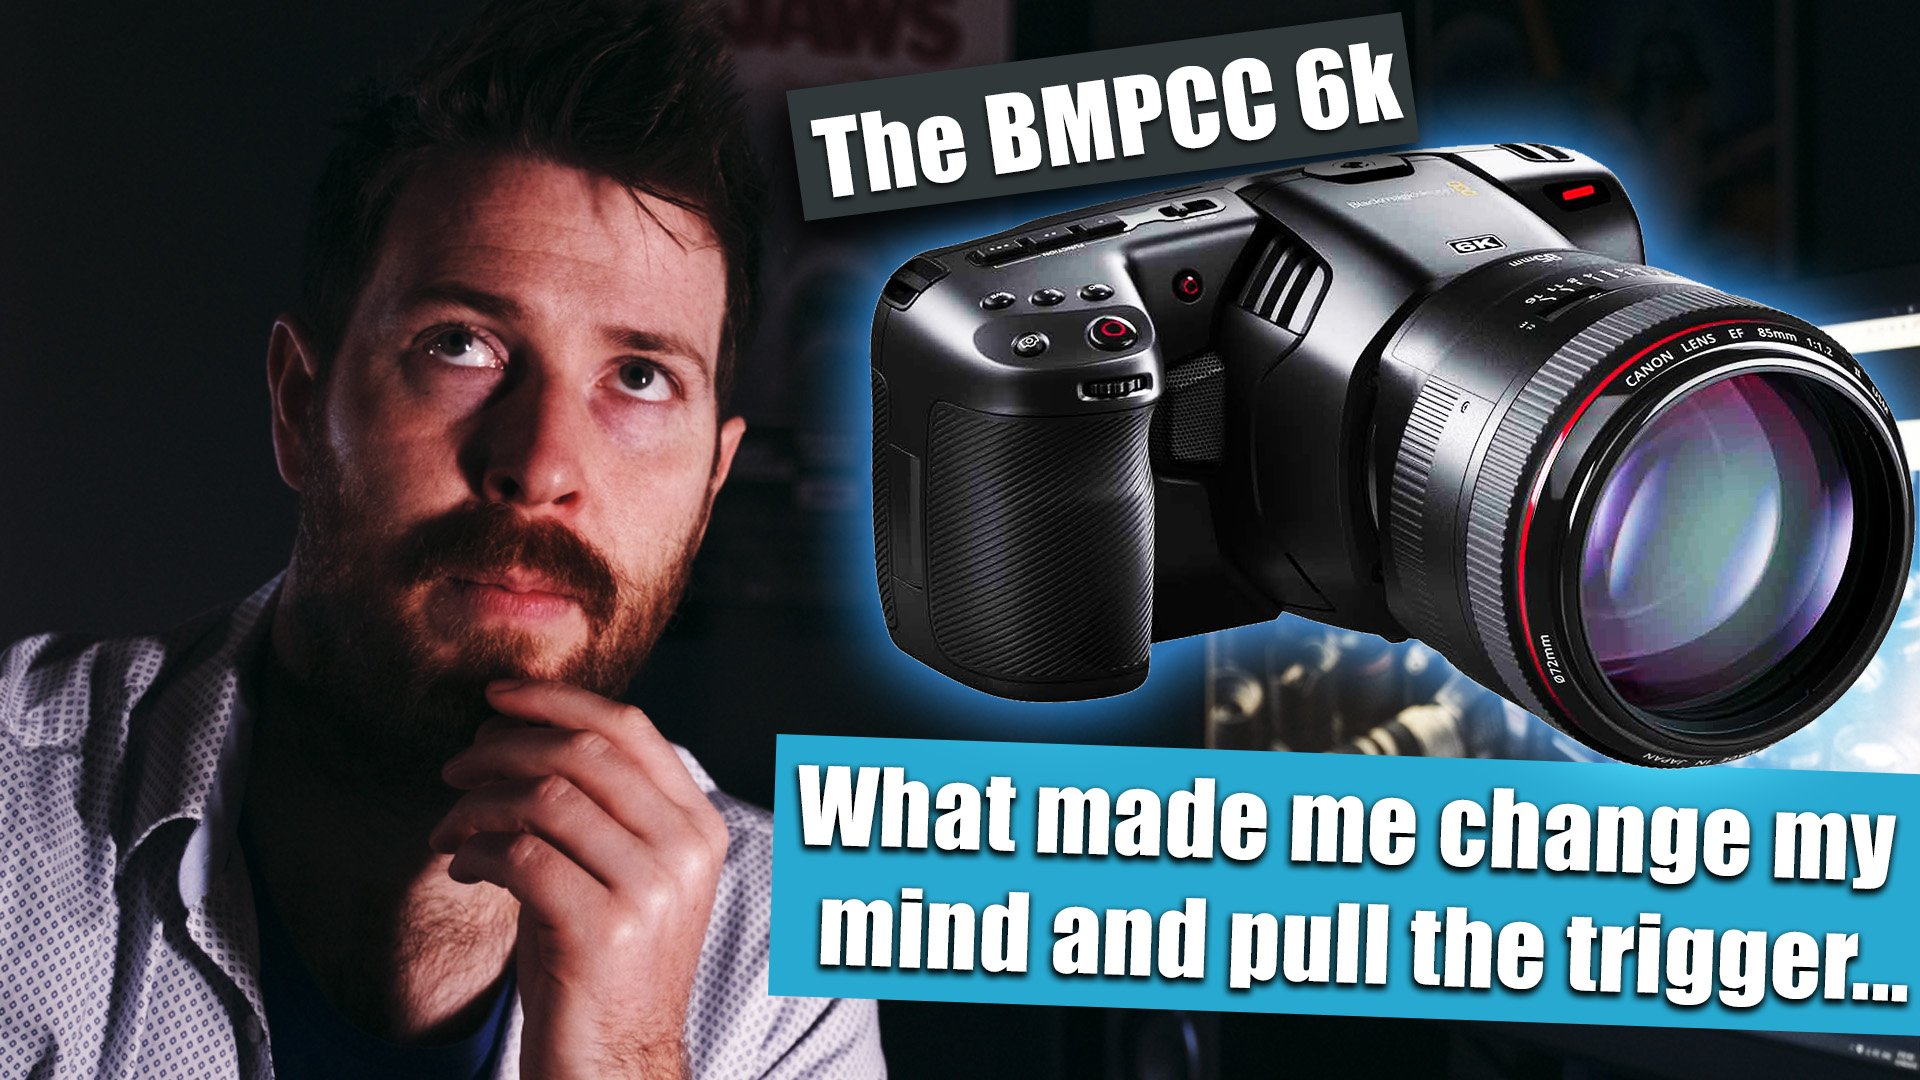 BMPCC 6k – 10 Reasons Why a RED shooter changed his mind (and bought one)